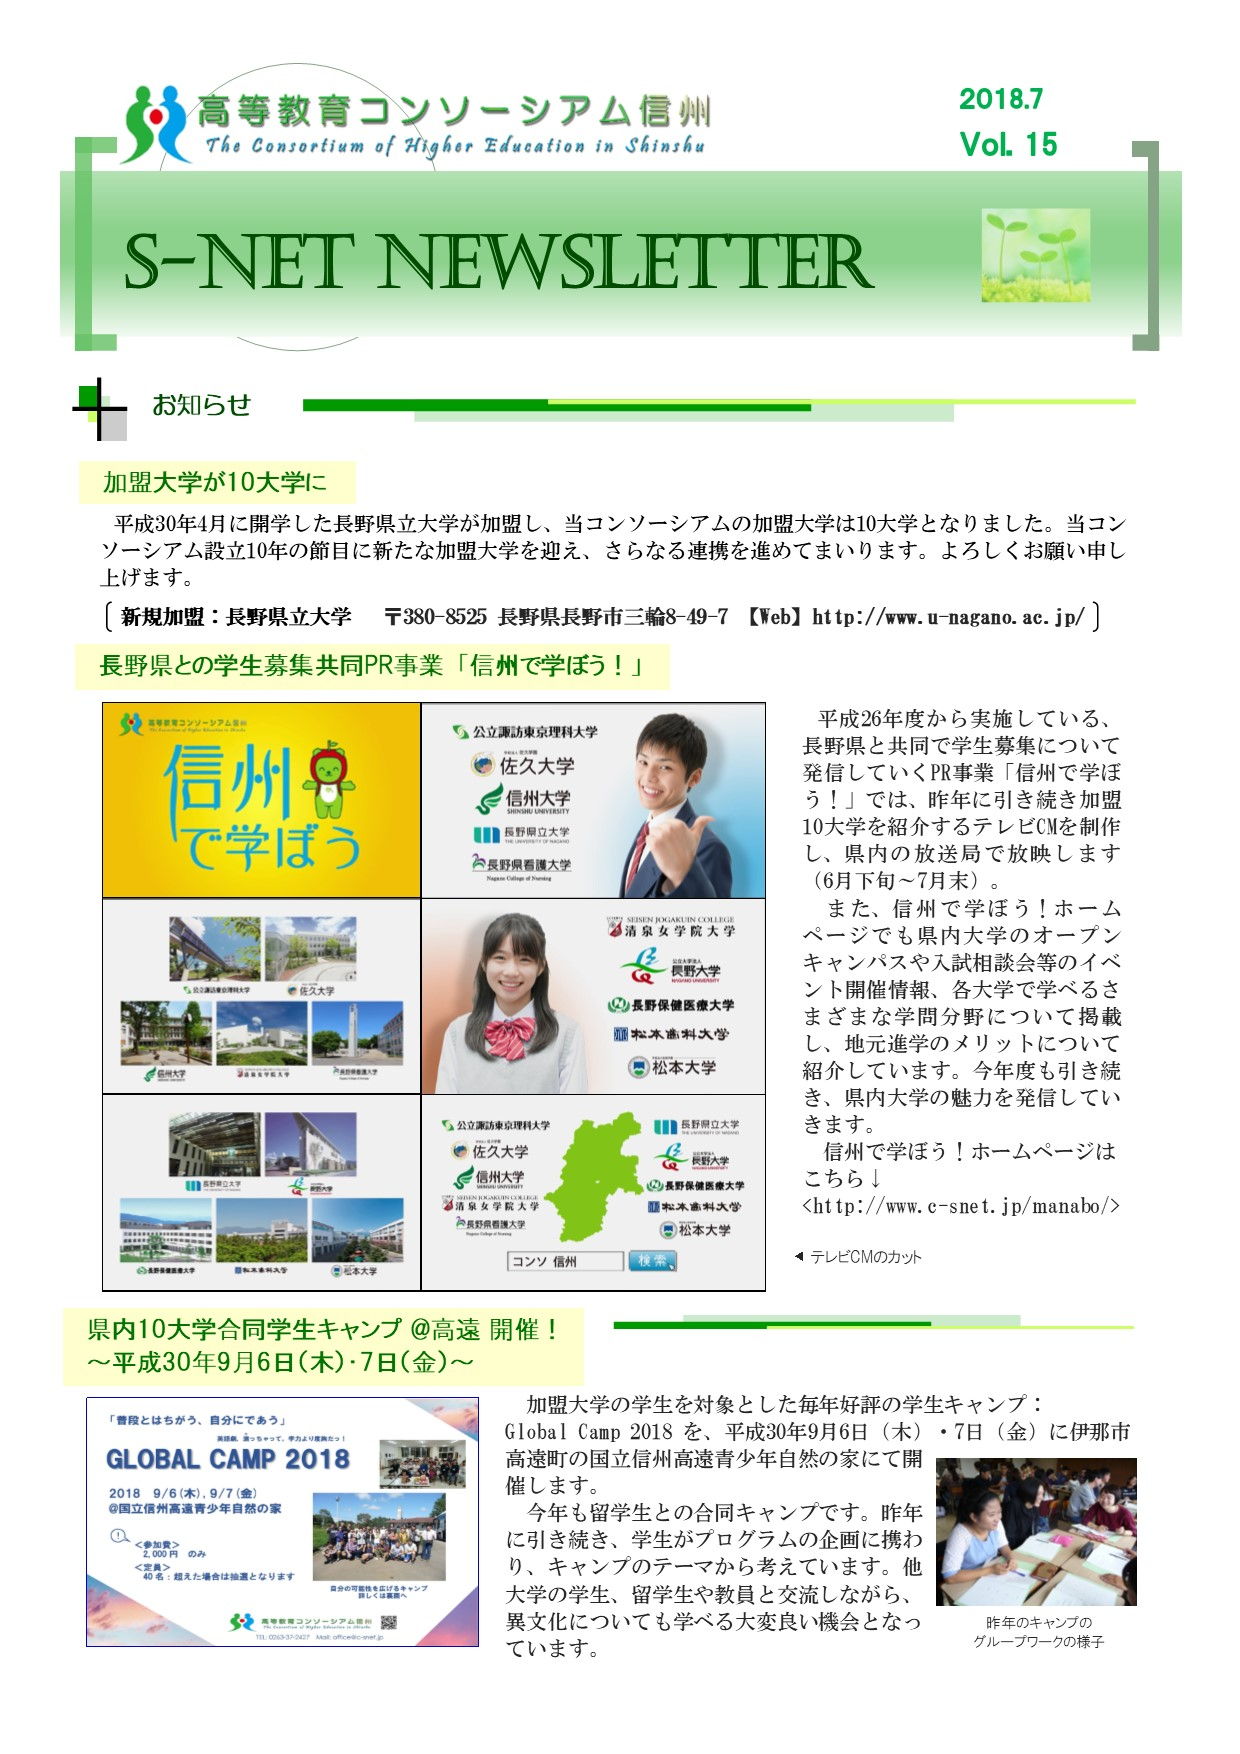 2018newsletter_vol15-1.jpg